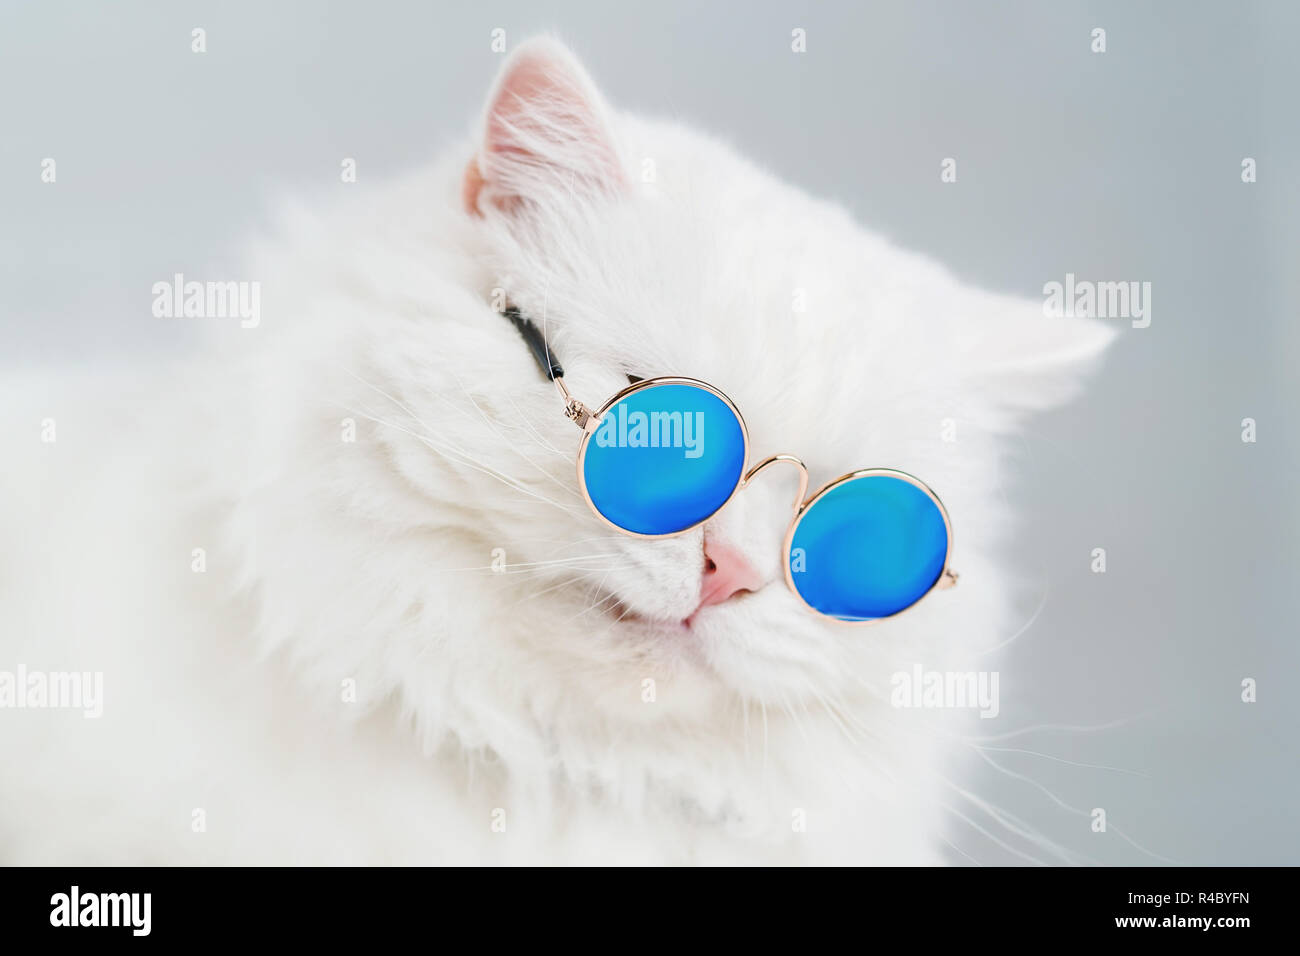 096fec2dd Luxurious domestic kitty in glasses poses on gray background wall. Portrait  of white fluffy cat